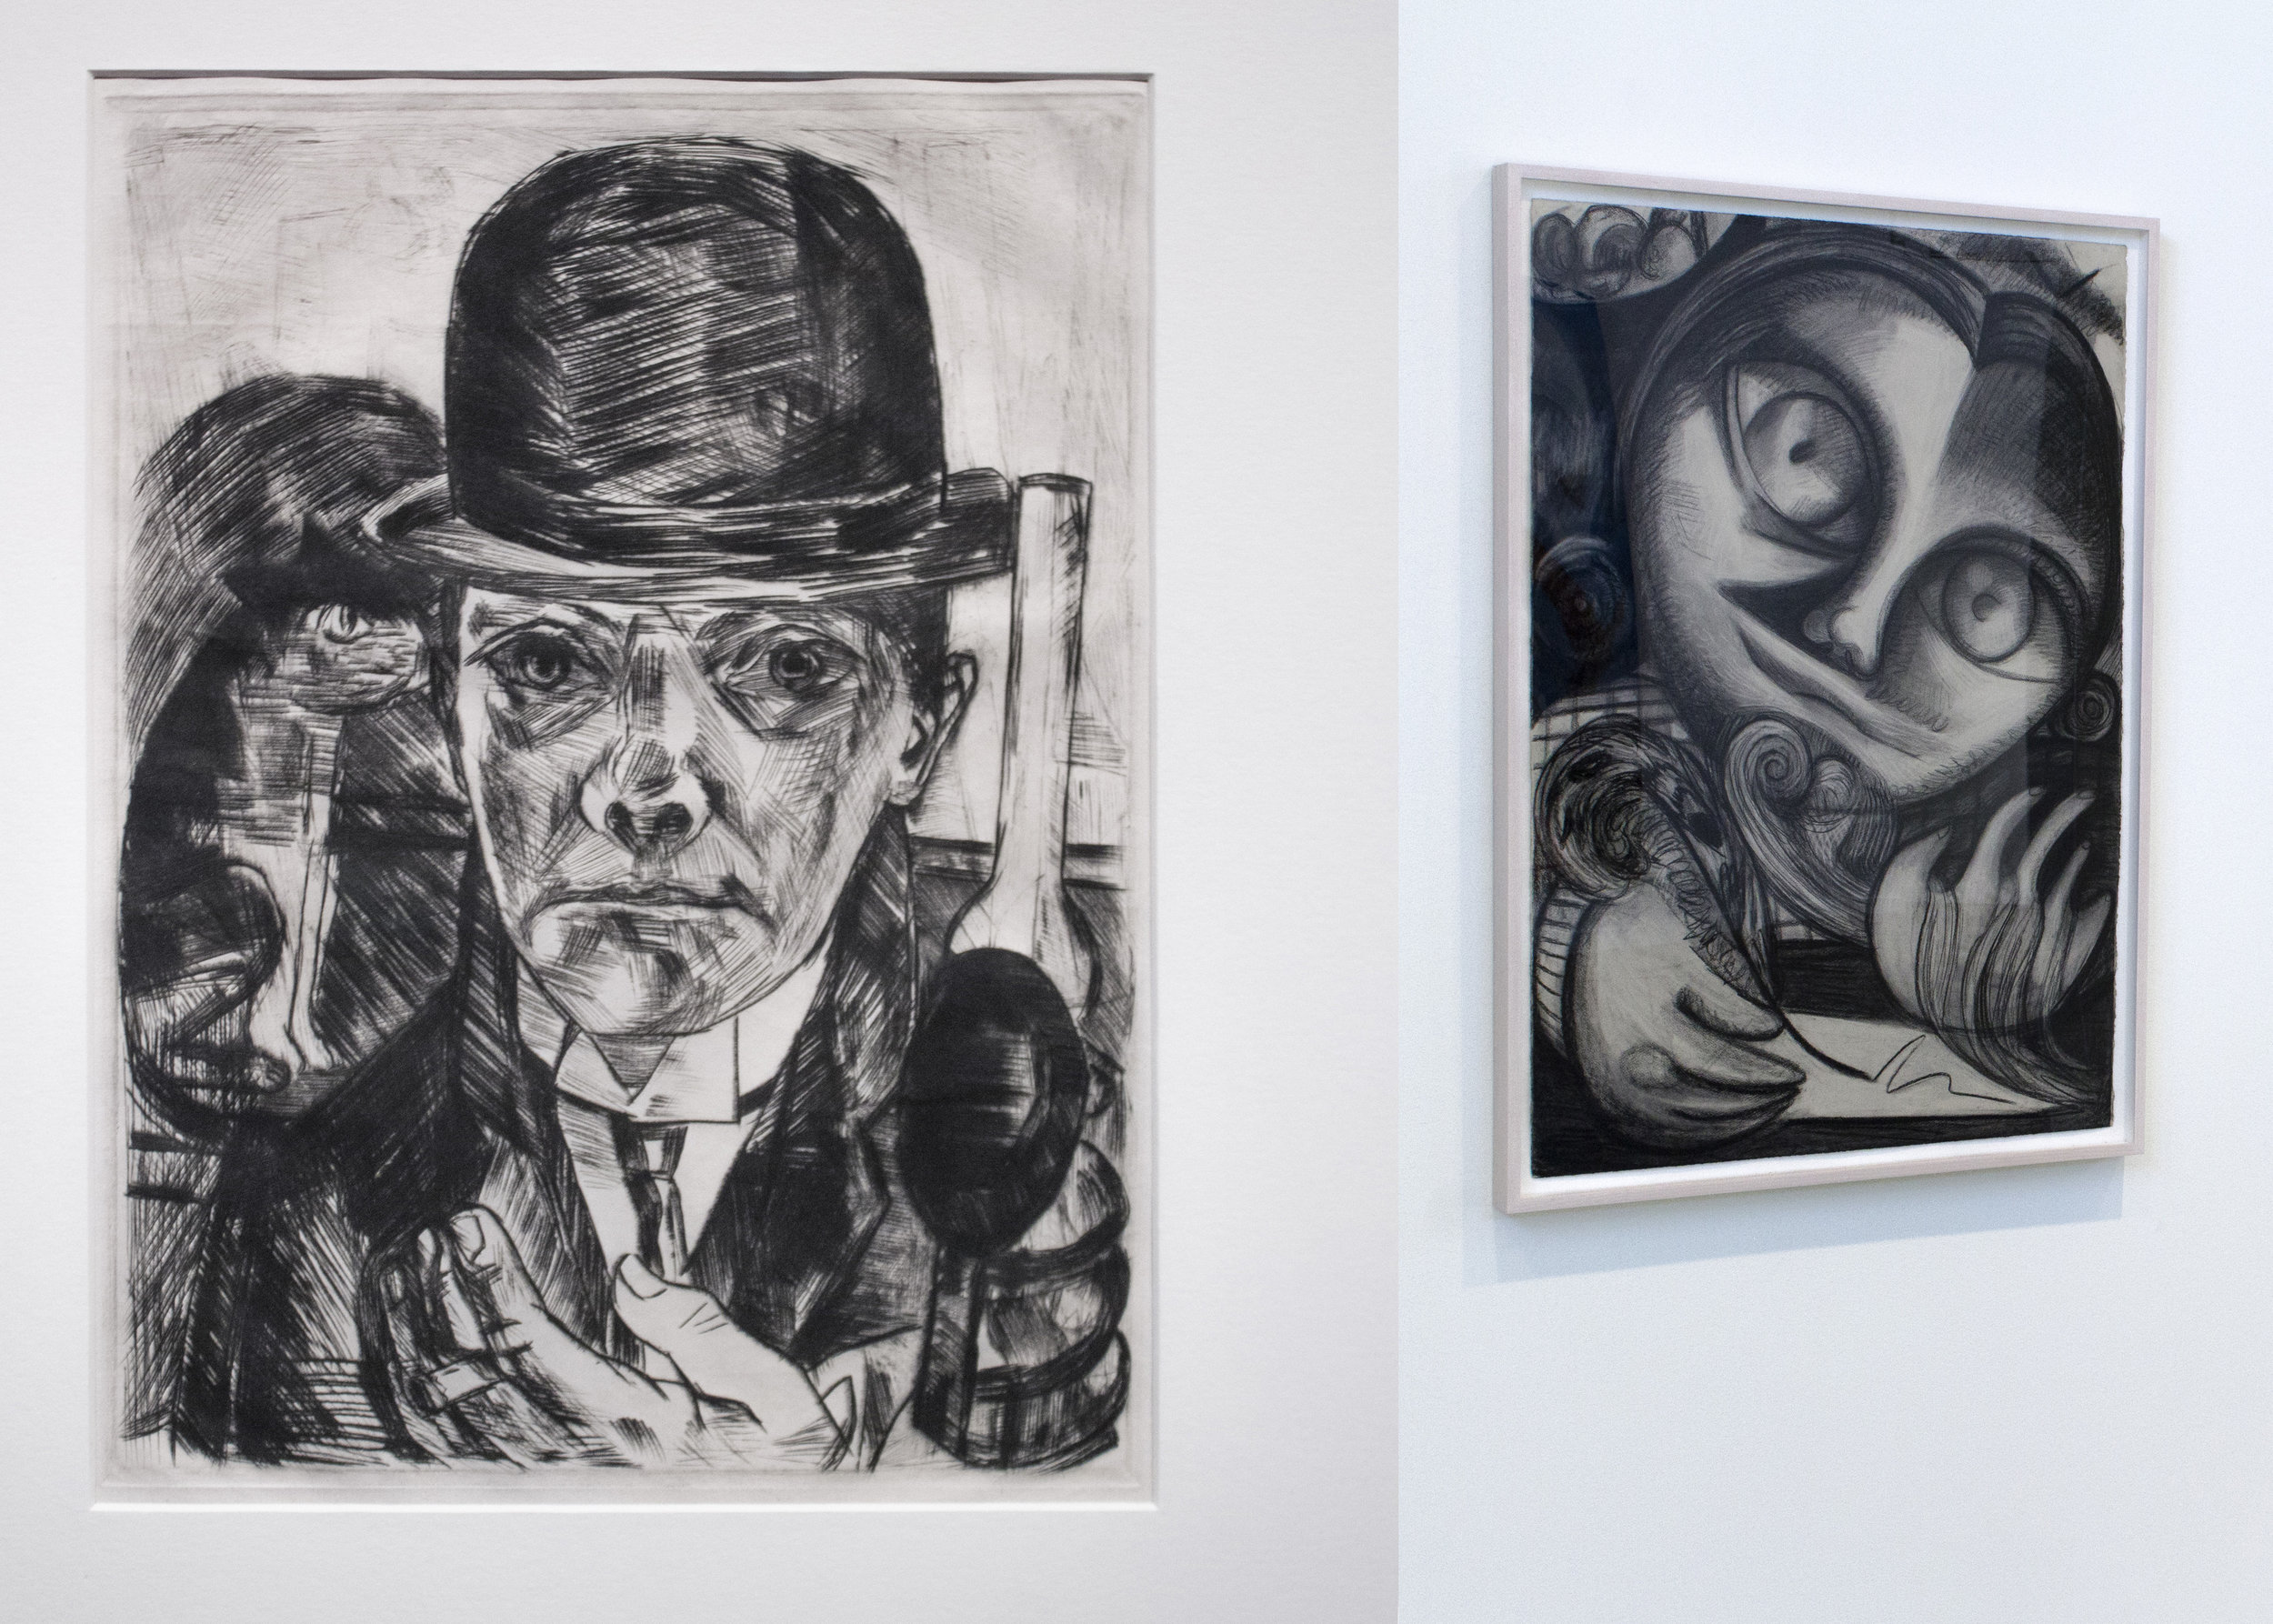 Max Beckmann, Self-Portrait in Bowler Hat, 1921, Drypoint AND Dana Schutz, The Philosopher, 2015, Charcoal on Paper.jpg